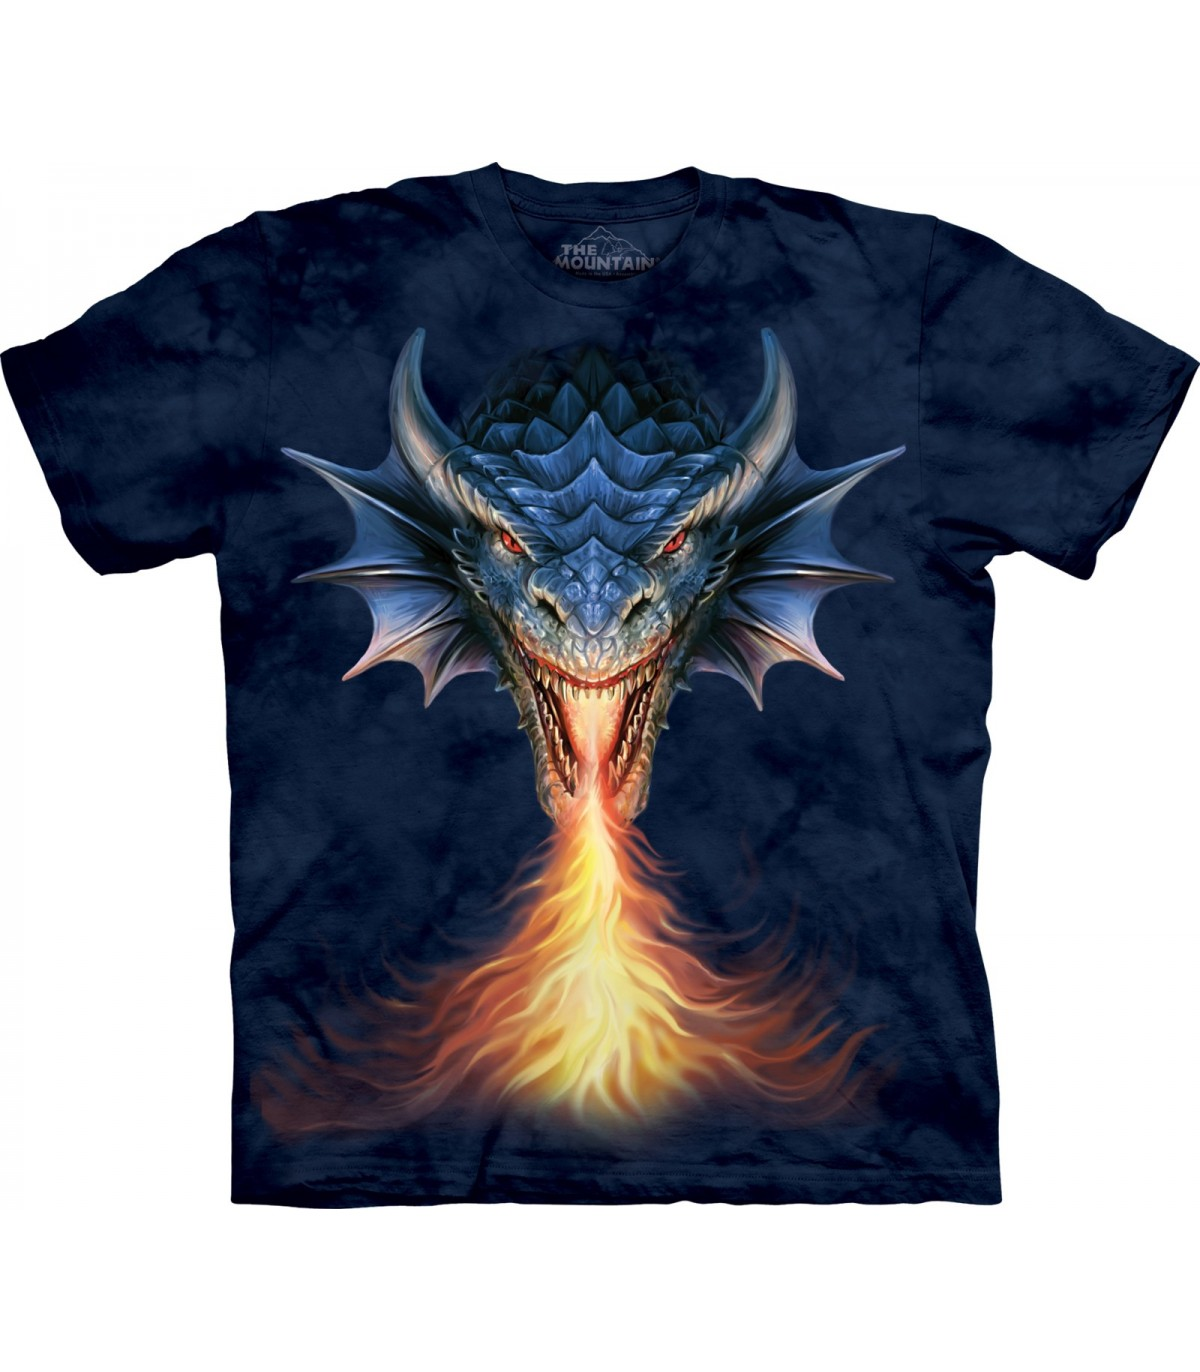 The Mountain Child Fire Breather Anne Stokes Dragon T Shirt